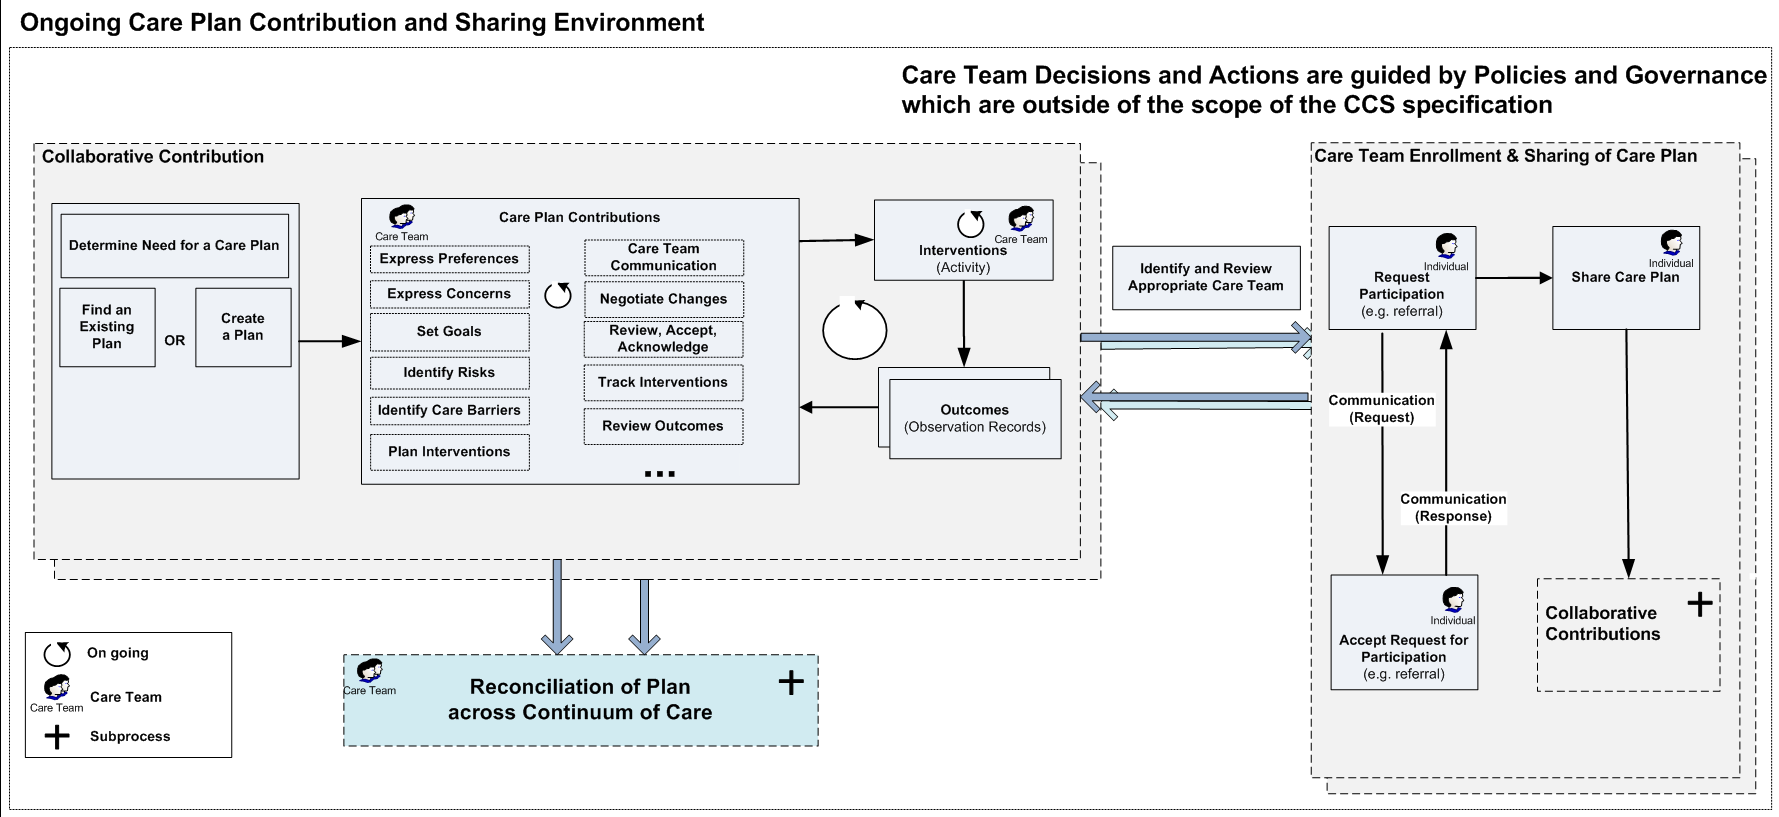 Ongoing Care Team Contribution and Sharing of Care Plan.png